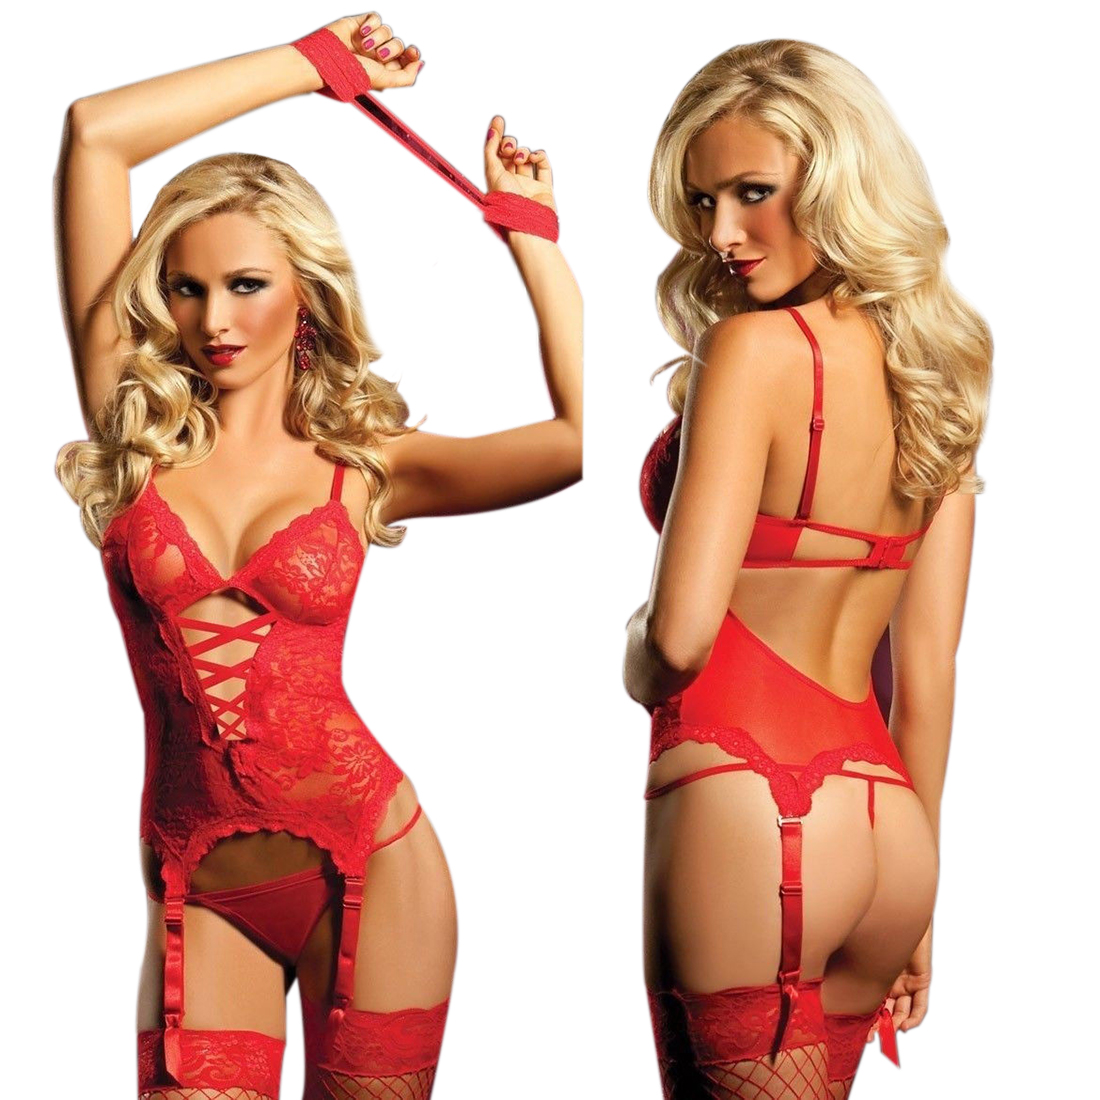 GLENDA: Red sexy underwear